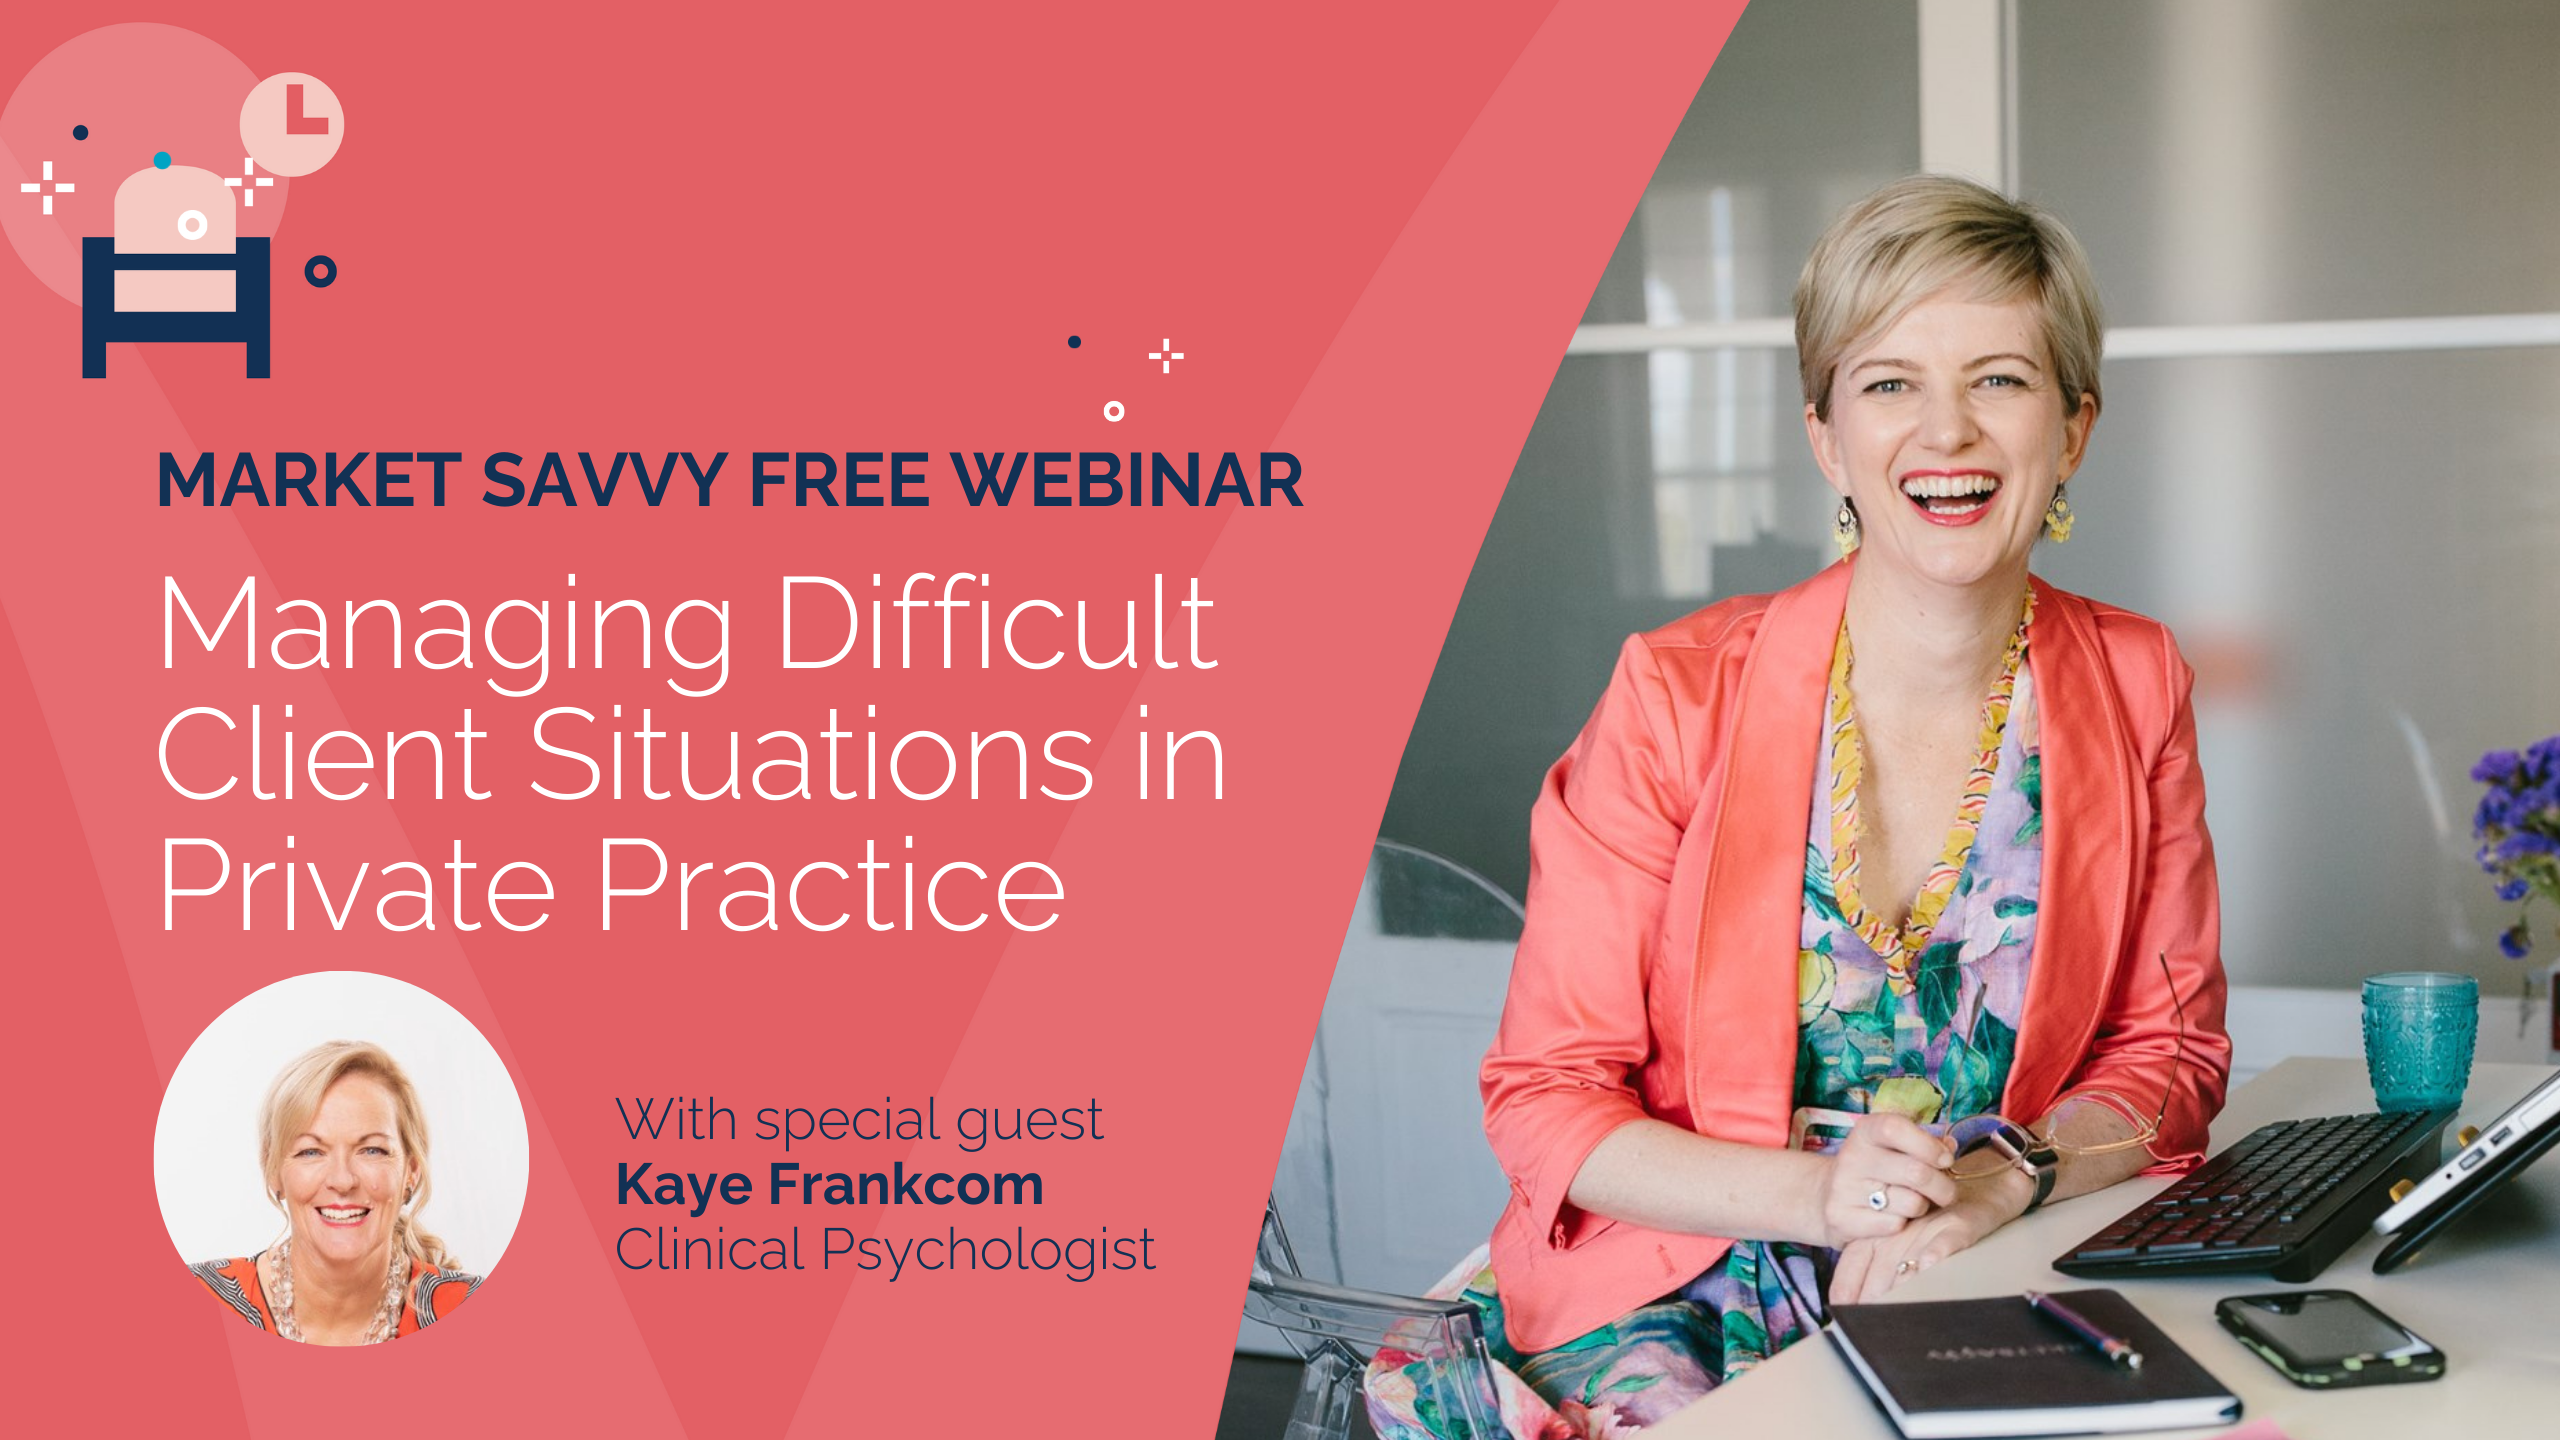 Market Savvy Webinar managing difficult client situations in private practice